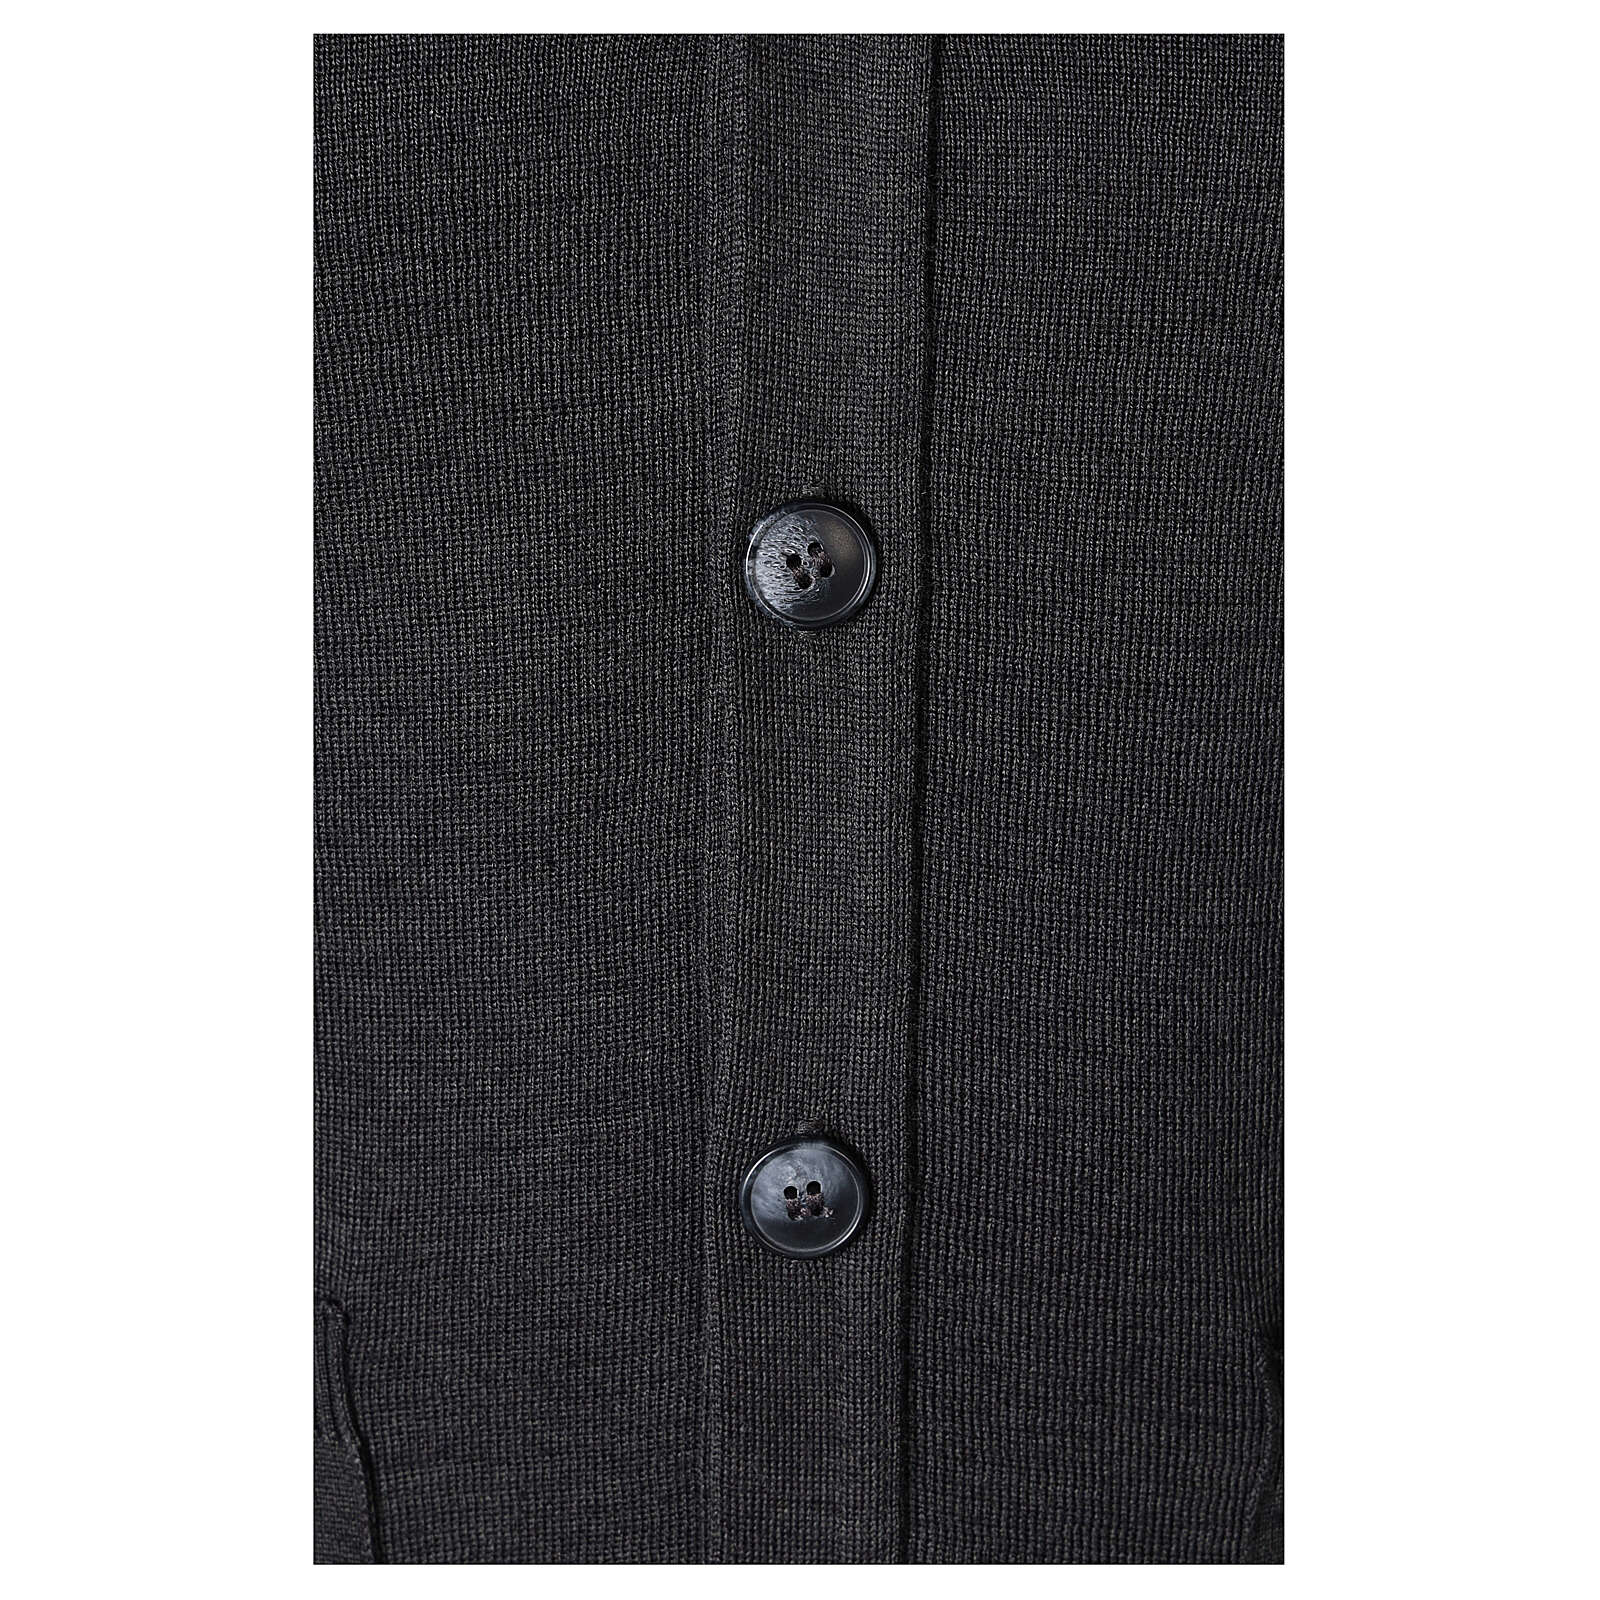 Grey clergy cardigan buttons and pockets 50% merino wool 50% acrylic In Primis 4